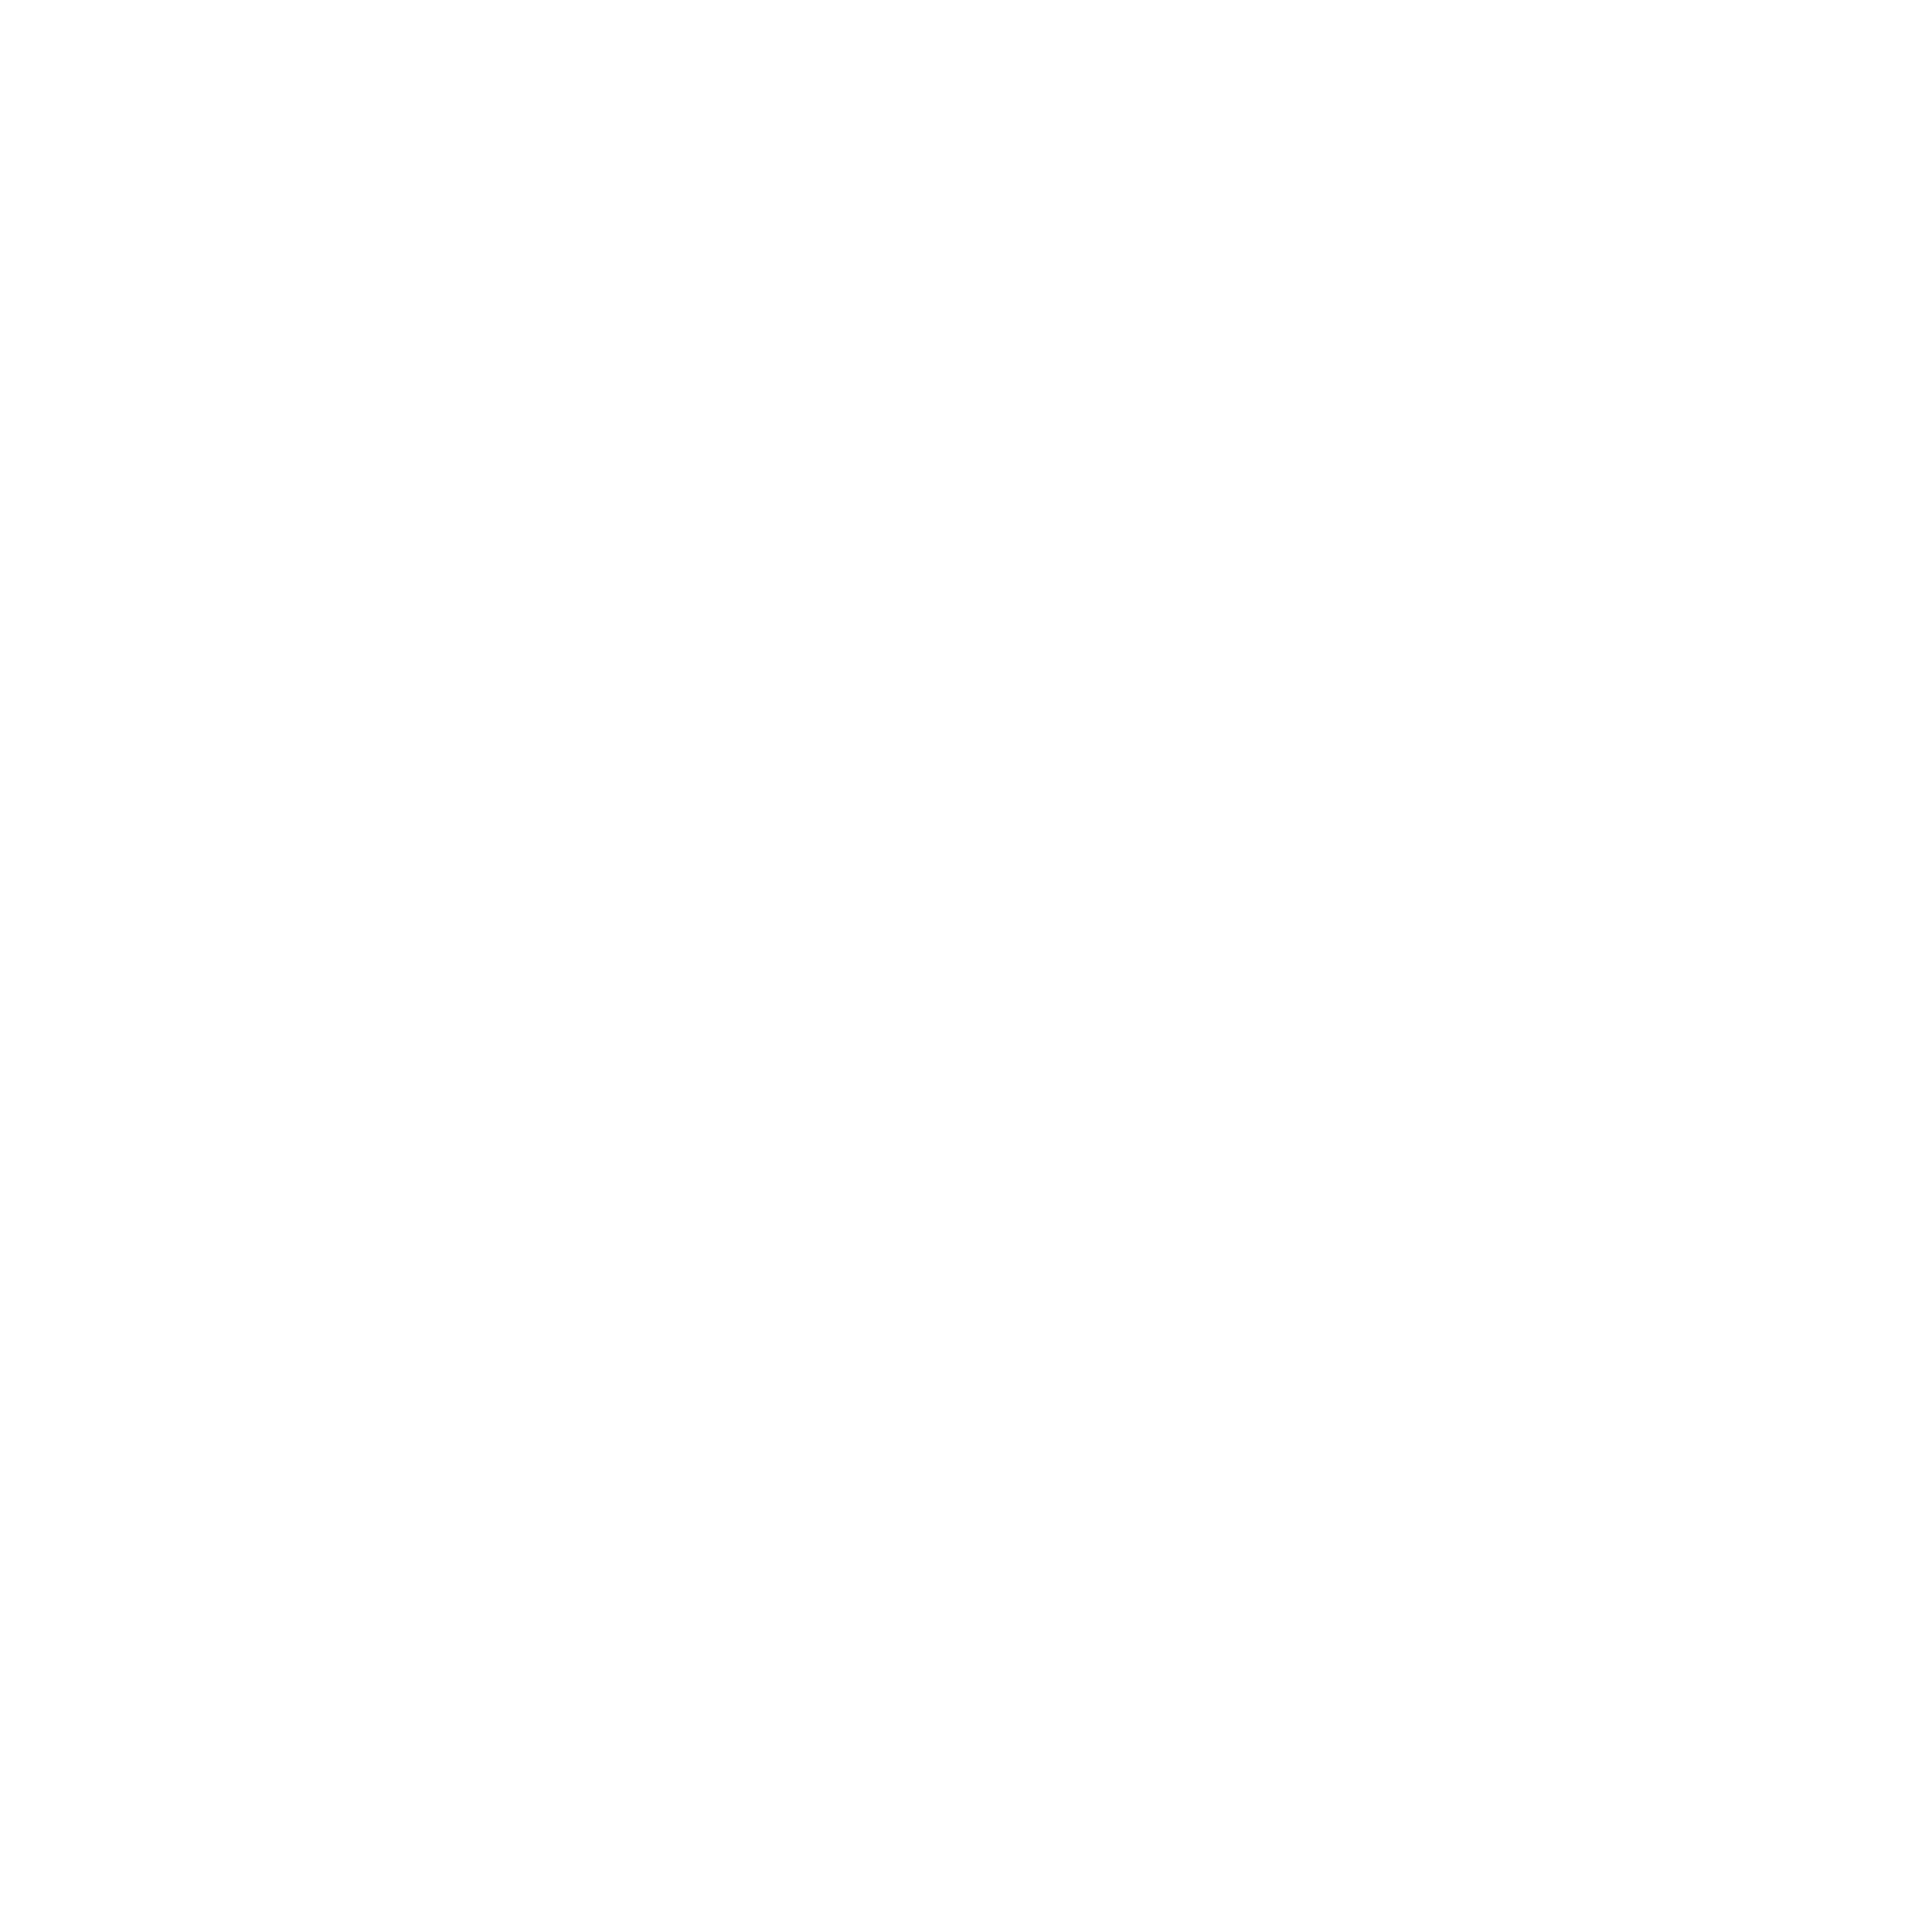 Logo for Dine Rewards, the loyalty program of Carrabba's Italian Grill.